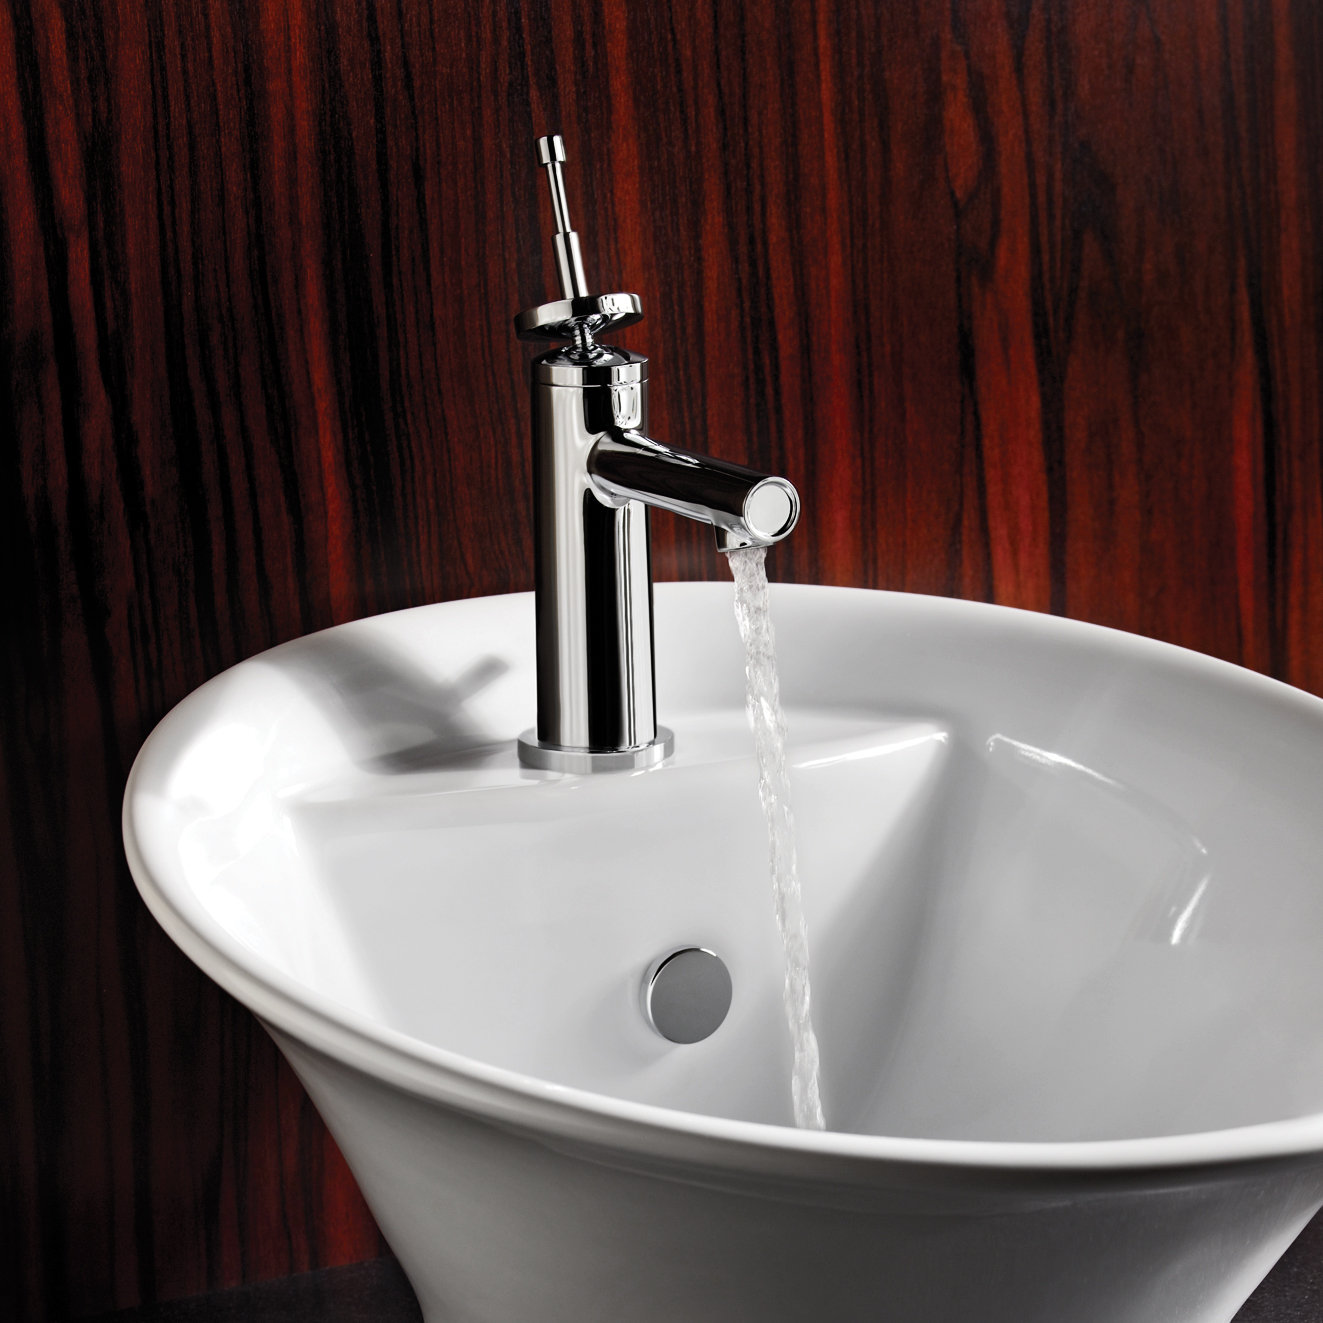 Buy Victorian vessel sink bathroom faucets on Amazon